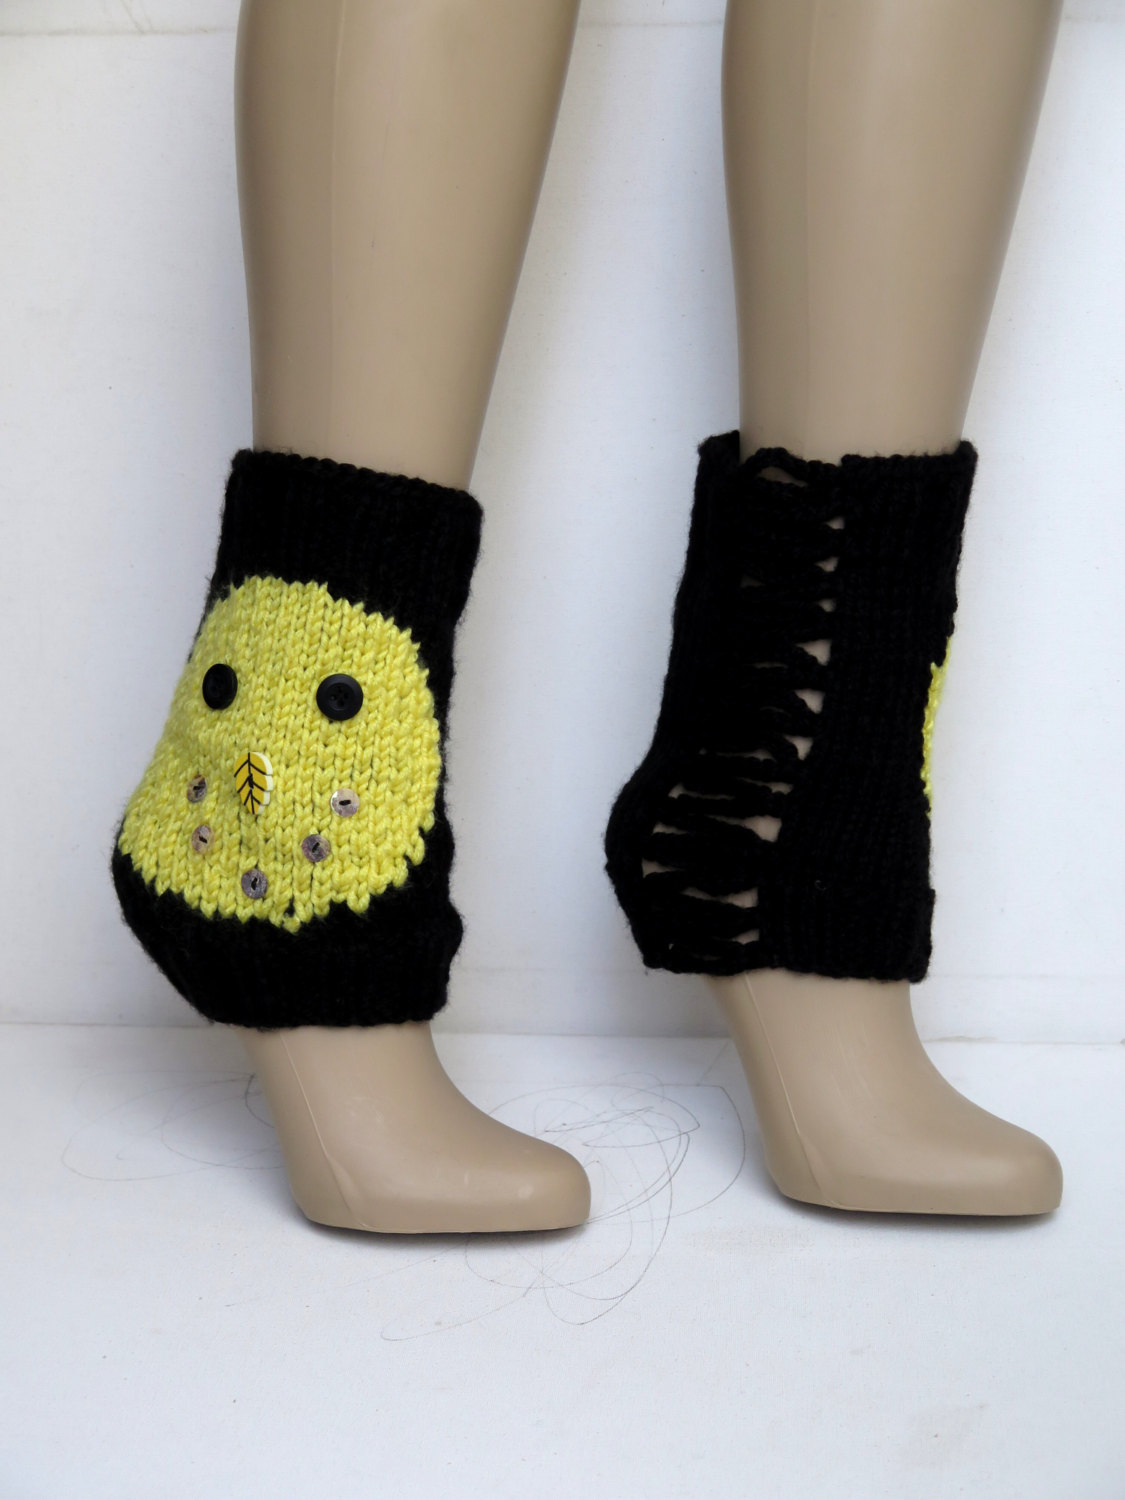 Smiley face boot cuffs